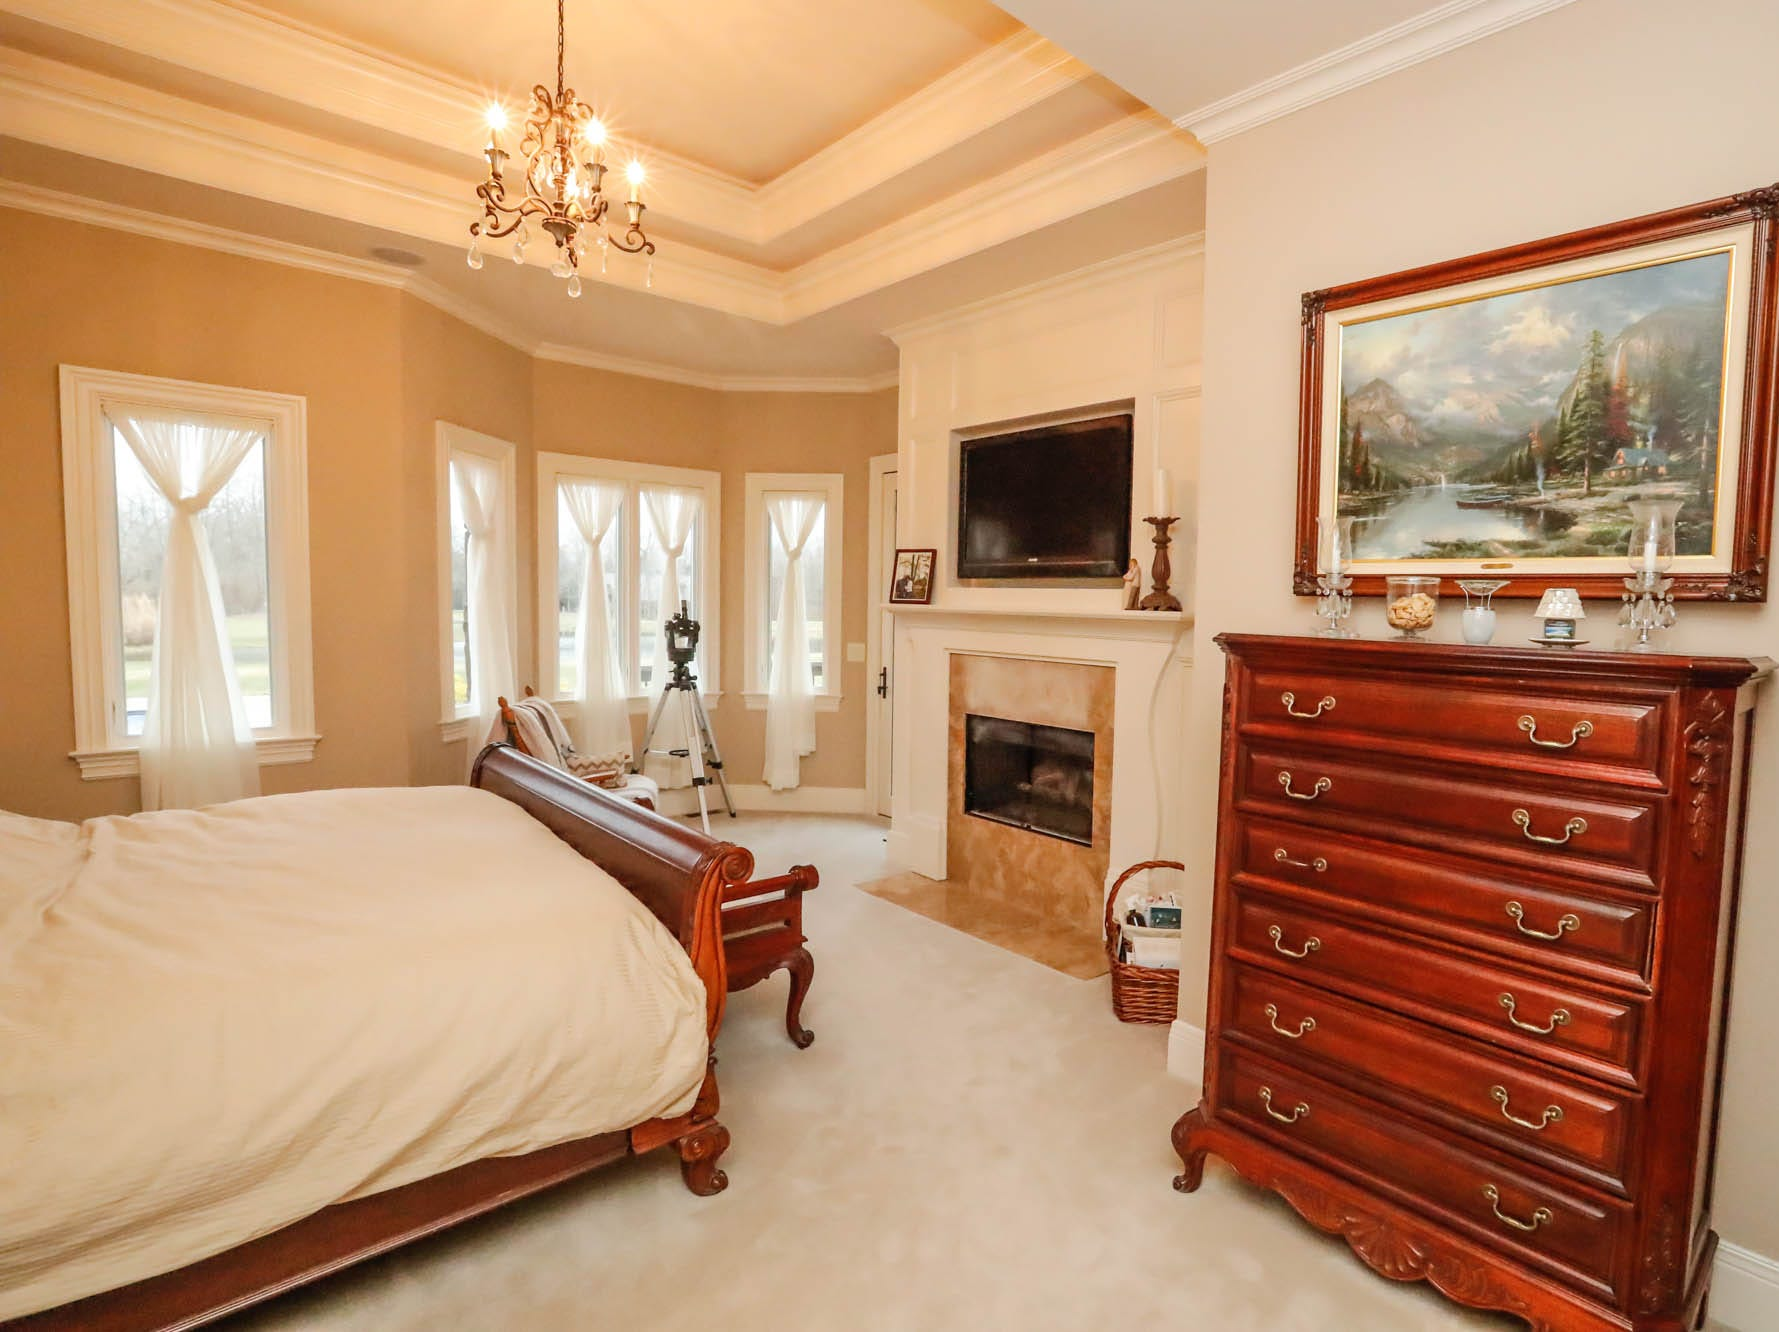 The master suite features a fireplace, large walk-in closet, and master bath in a traditional $2m home up for sale in Bargersville Ind. on Wednesday, Jan. 9, 2019. The house sits on 8.1 acres.